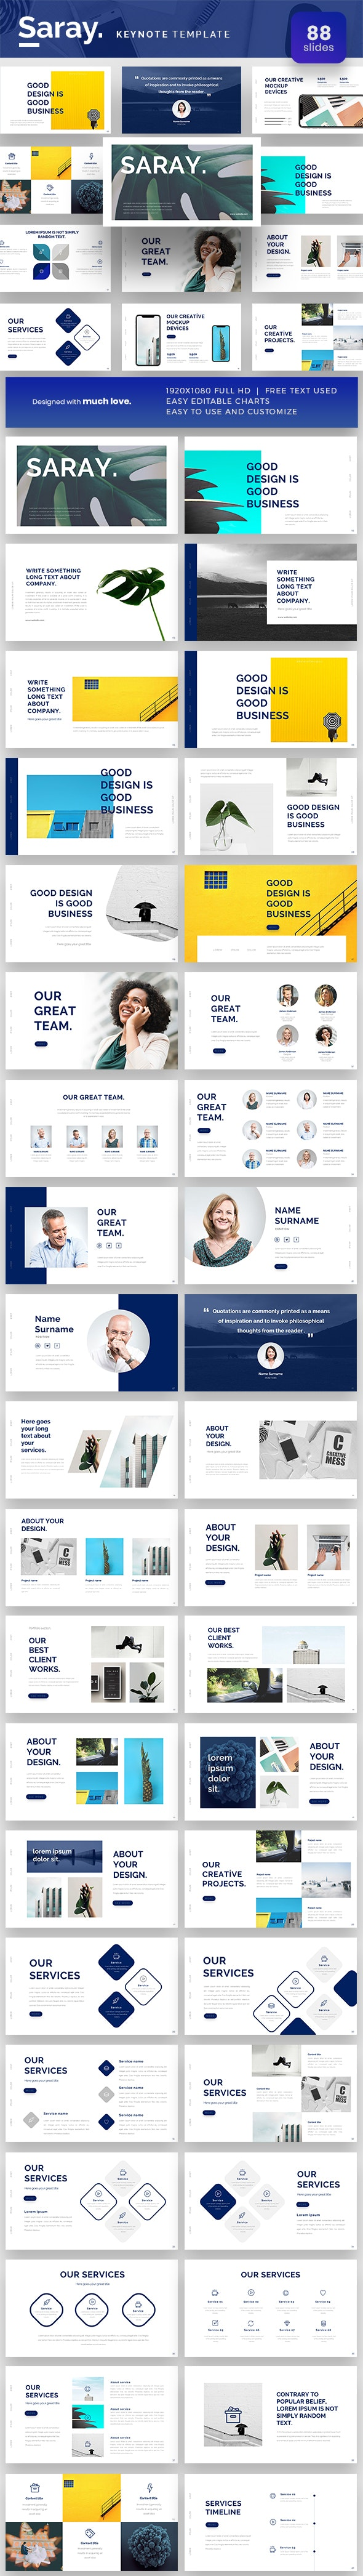 Saray Keynote Presentation Template - Keynote Templates Presentation Templates